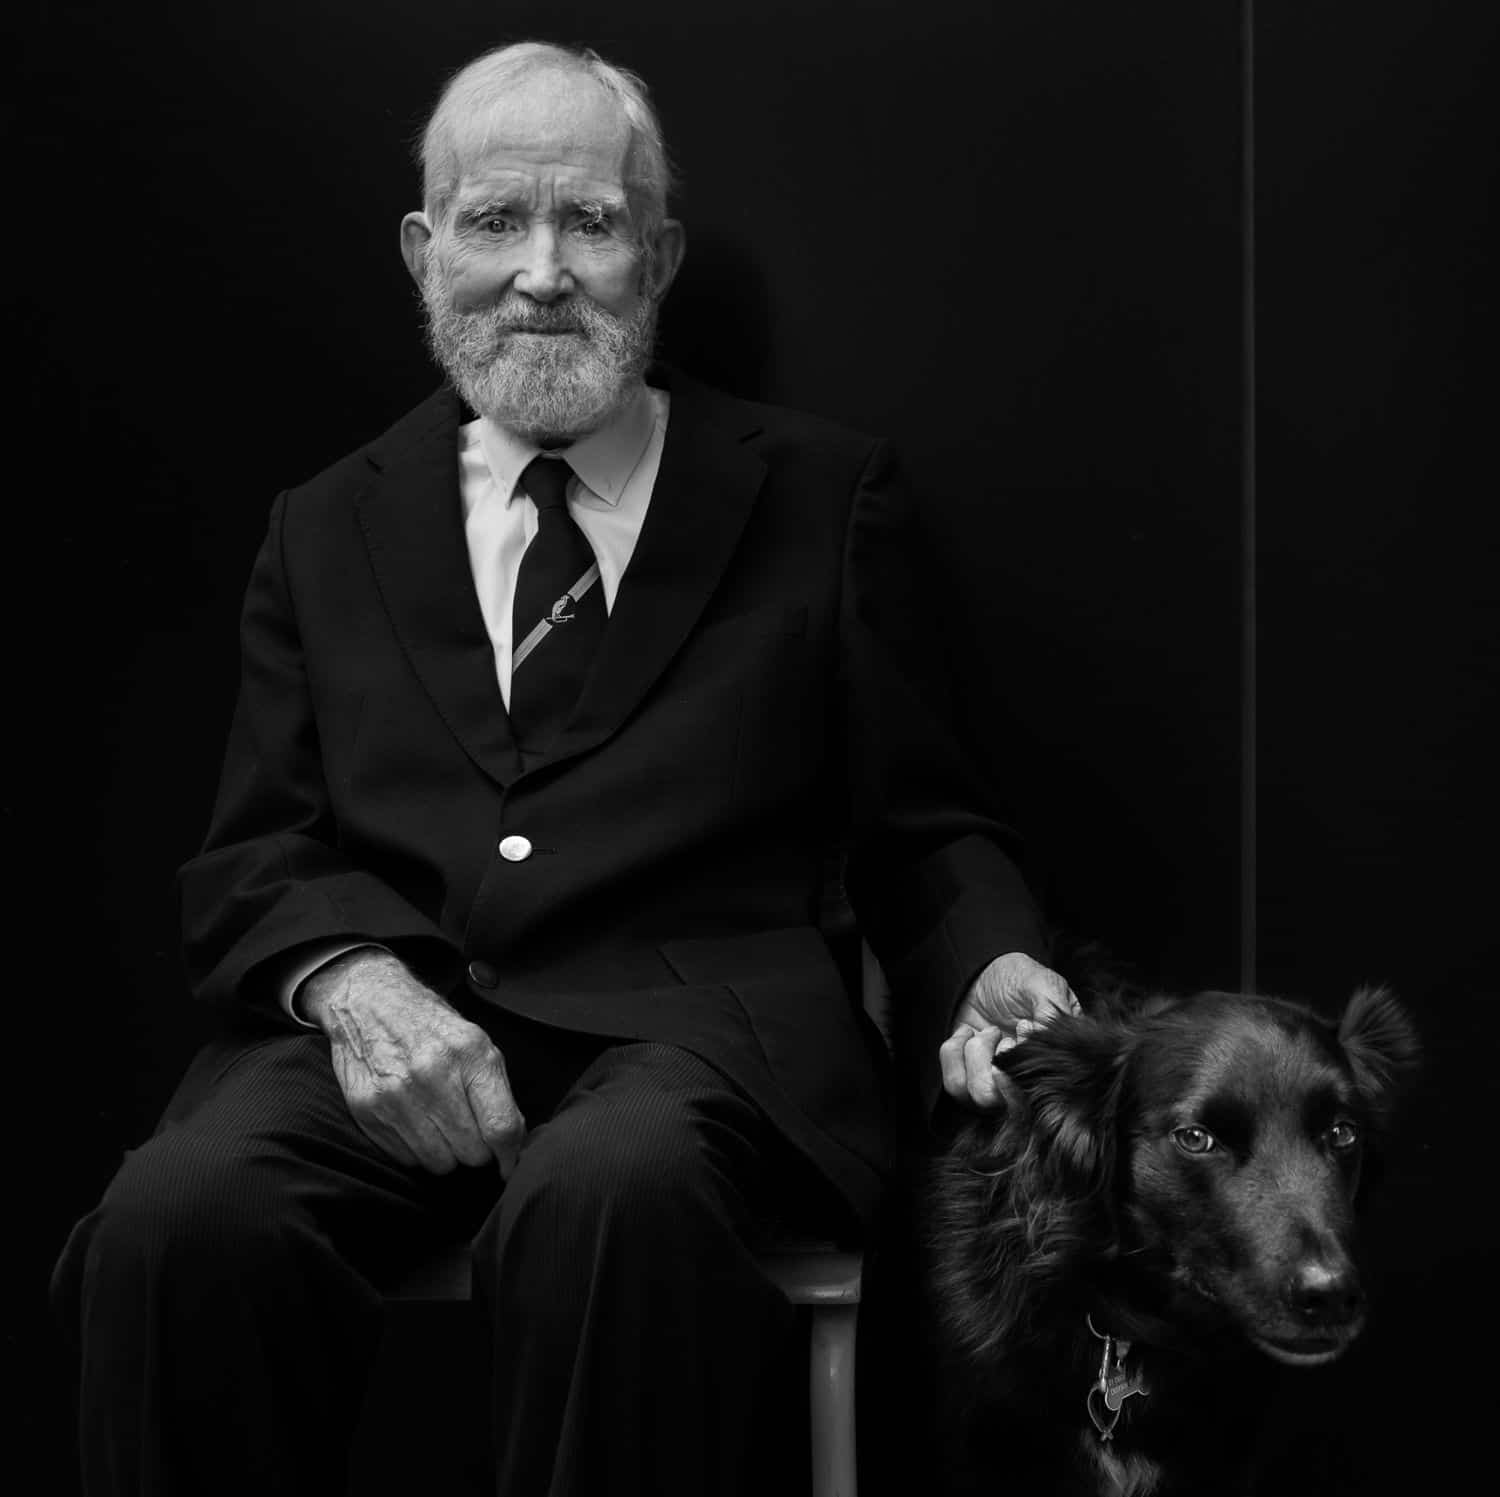 Authenticity Is Dead and Everything Is Wonderful: Oli Sansom's Portrait of A Man with His Dog